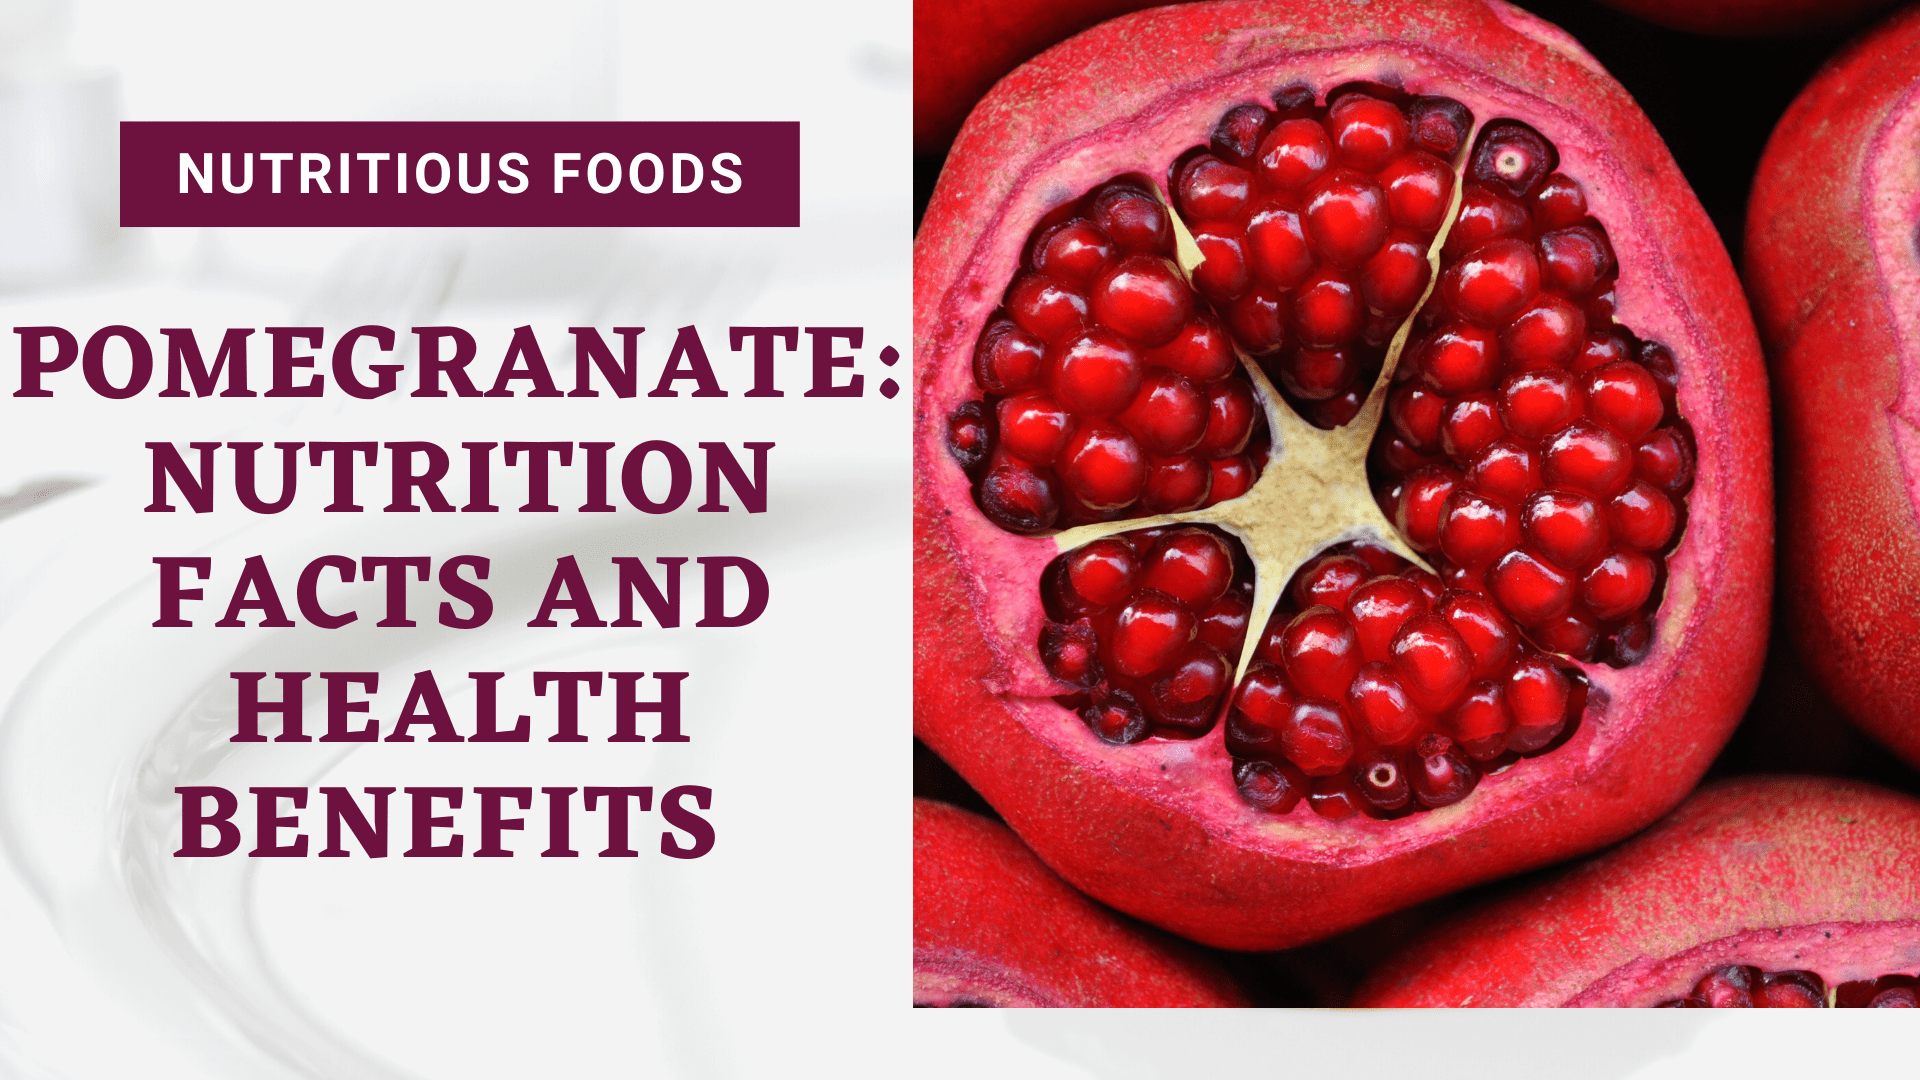 POMEGRANATE: NUTRITION FACTS, HEALTH BENEFITS AND USEFUL INFORMATION YOU NEED TO KNOW ABOUT THEM